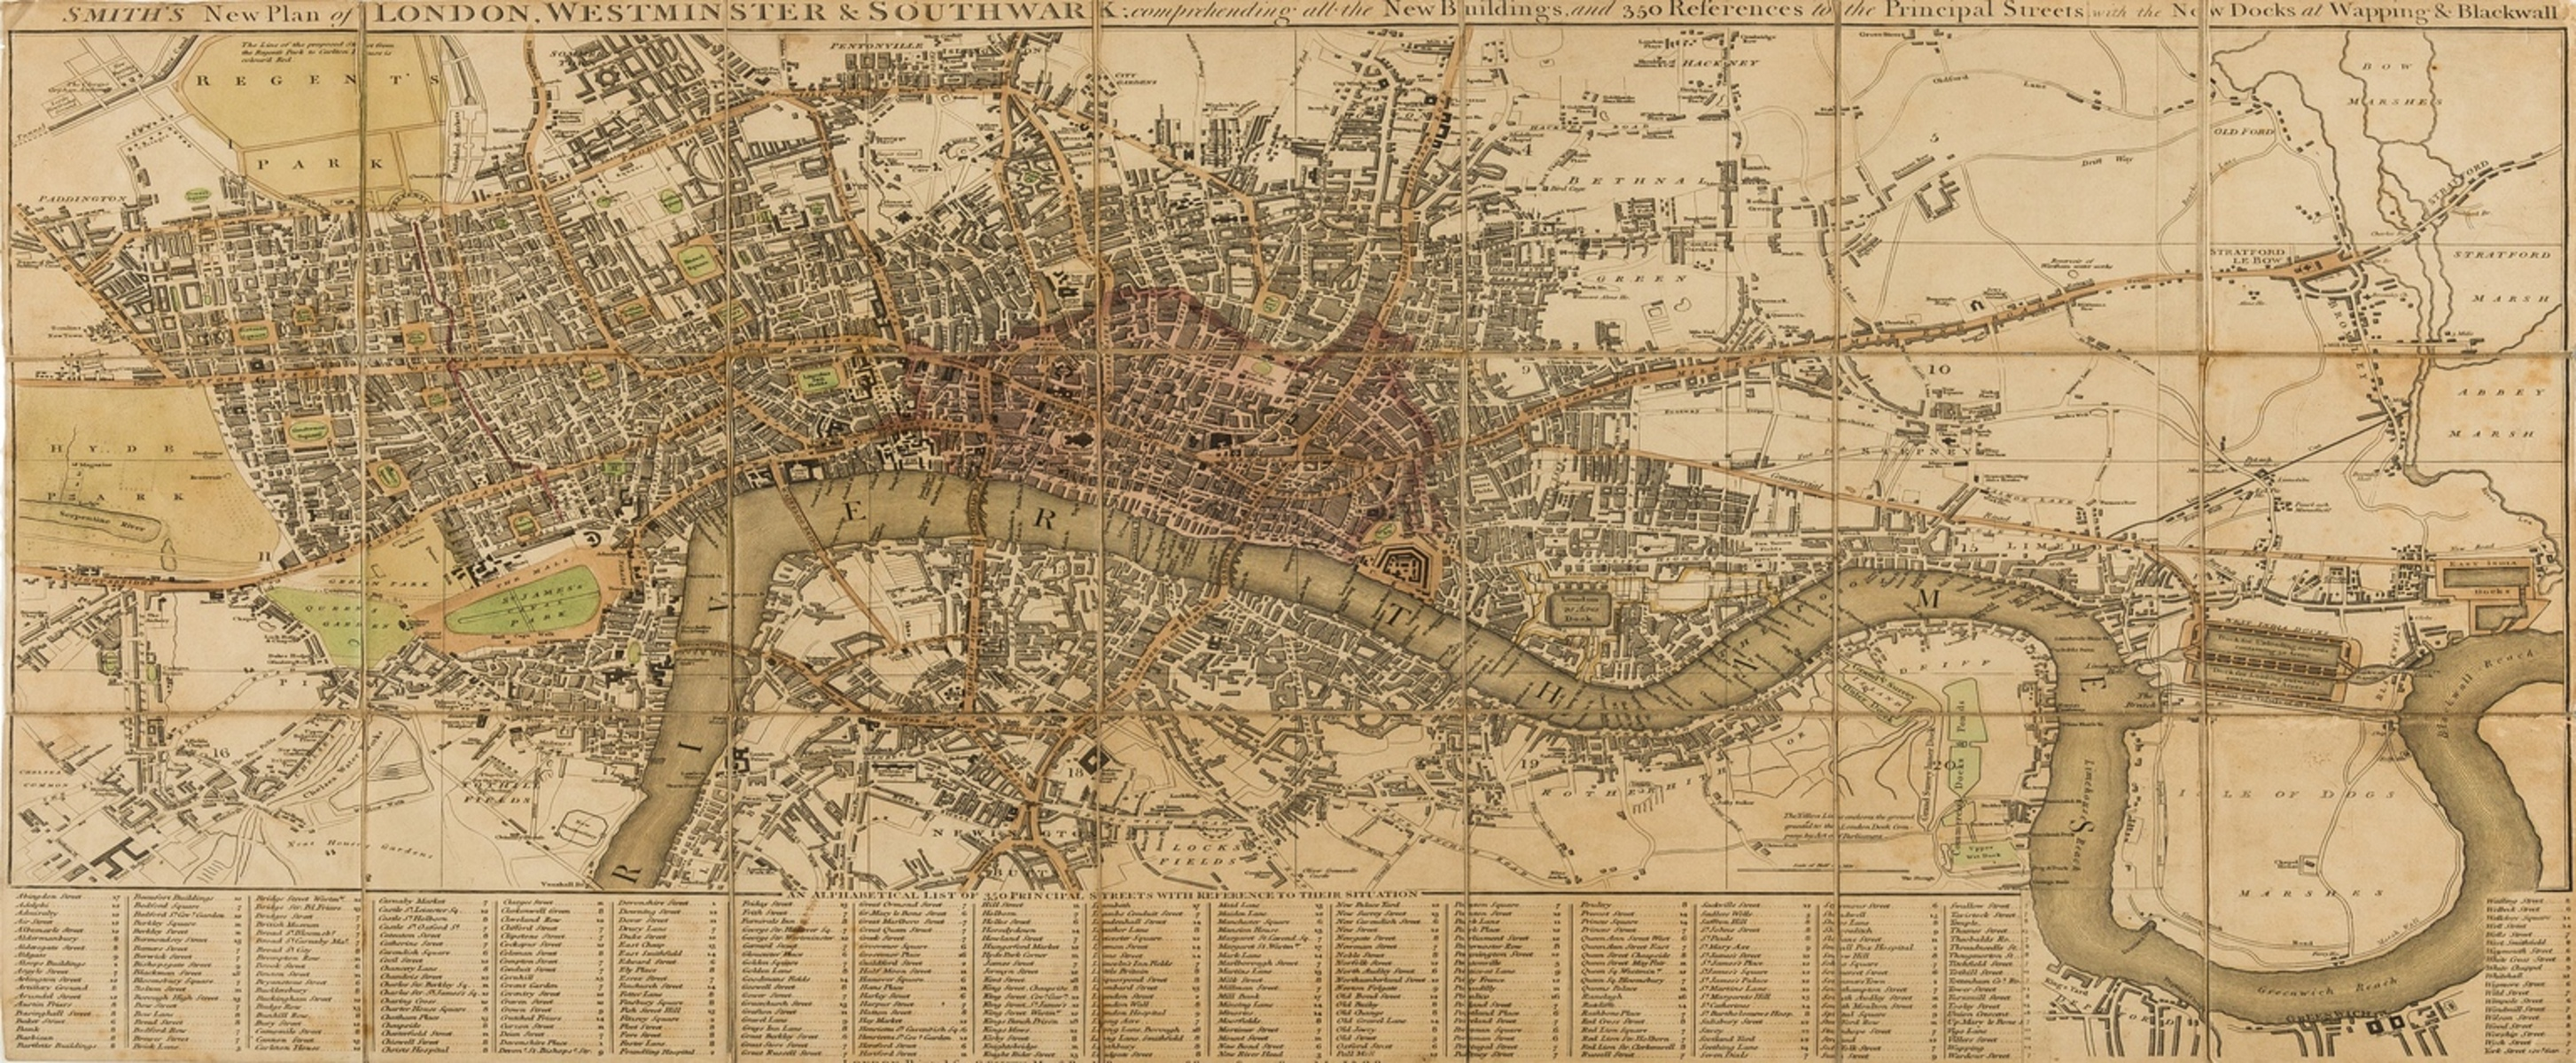 London.- Smith (Charles) Smith's New Plan of London, Westminster & Southwark, 1818.